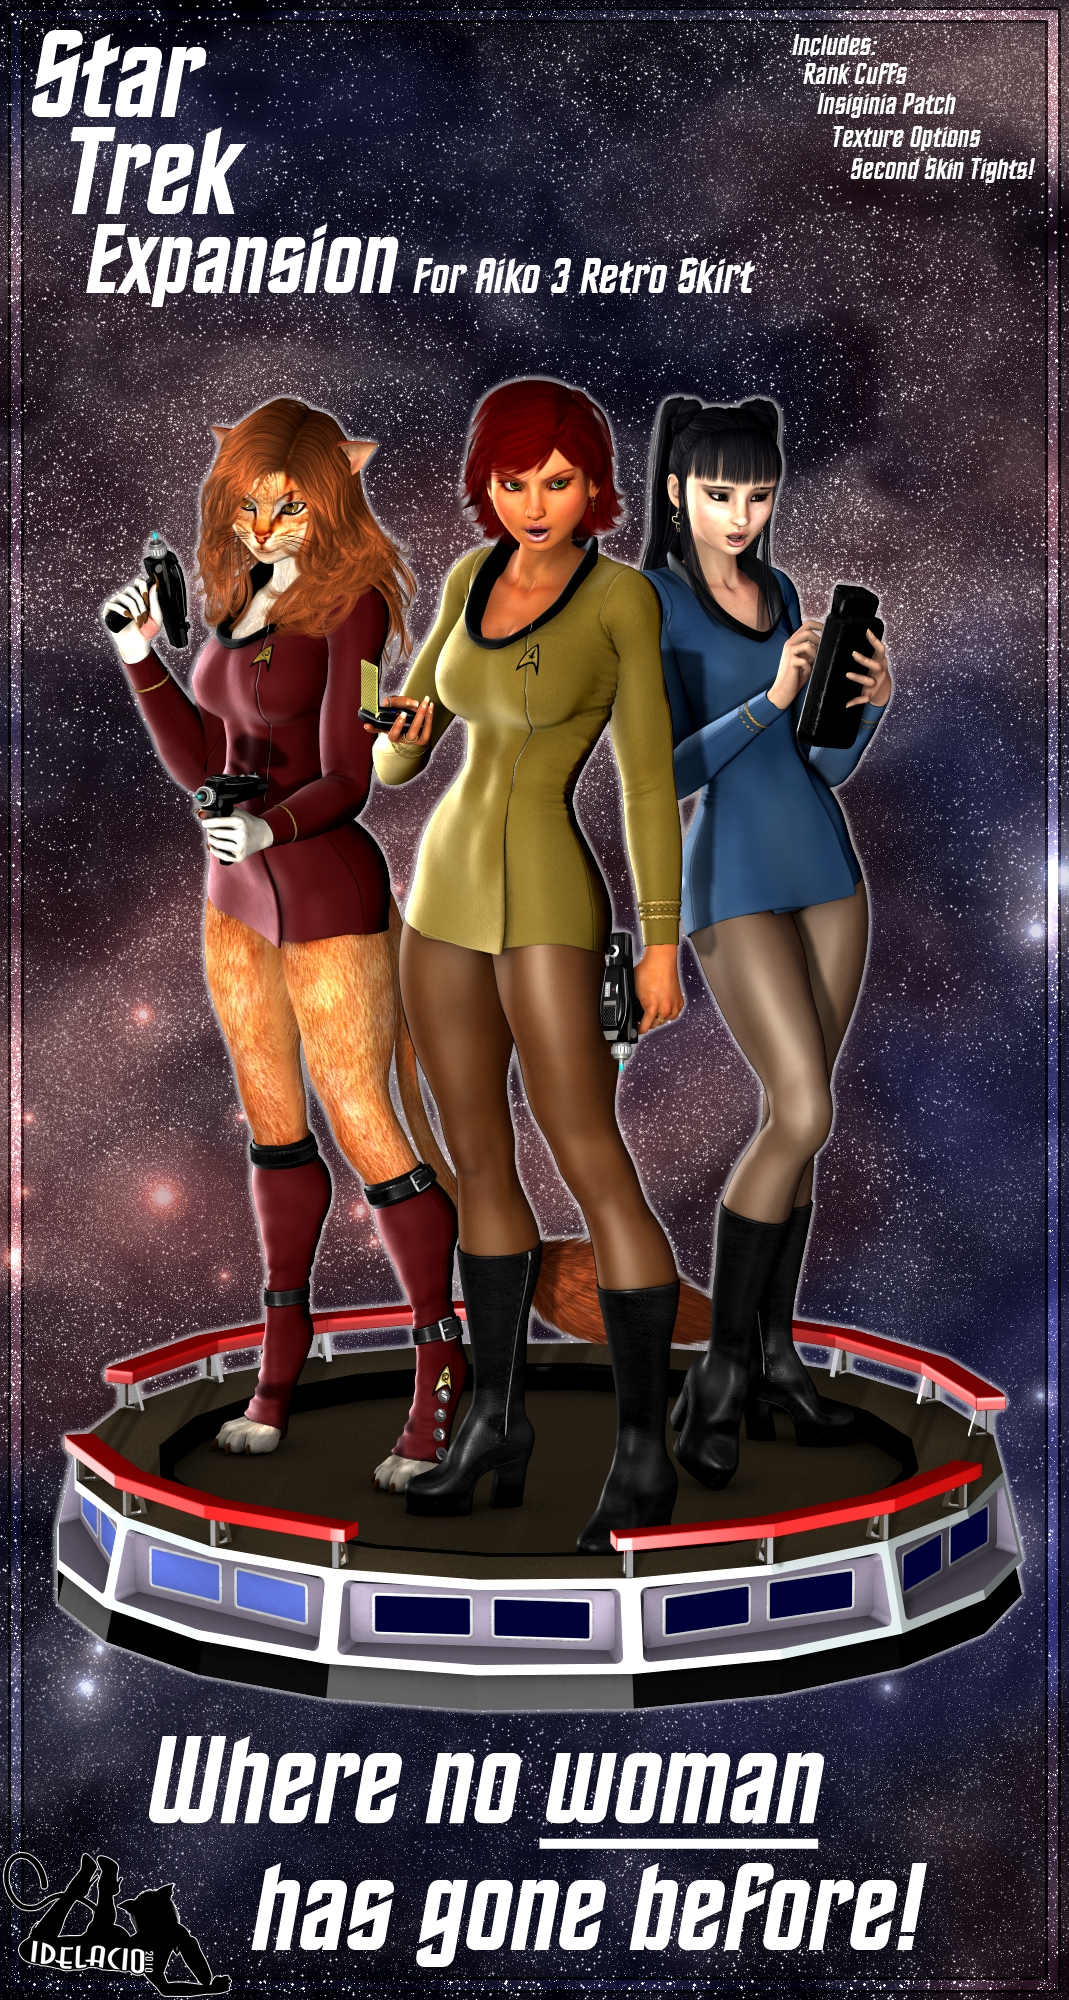 Star Trek Expansion for Aiko 3